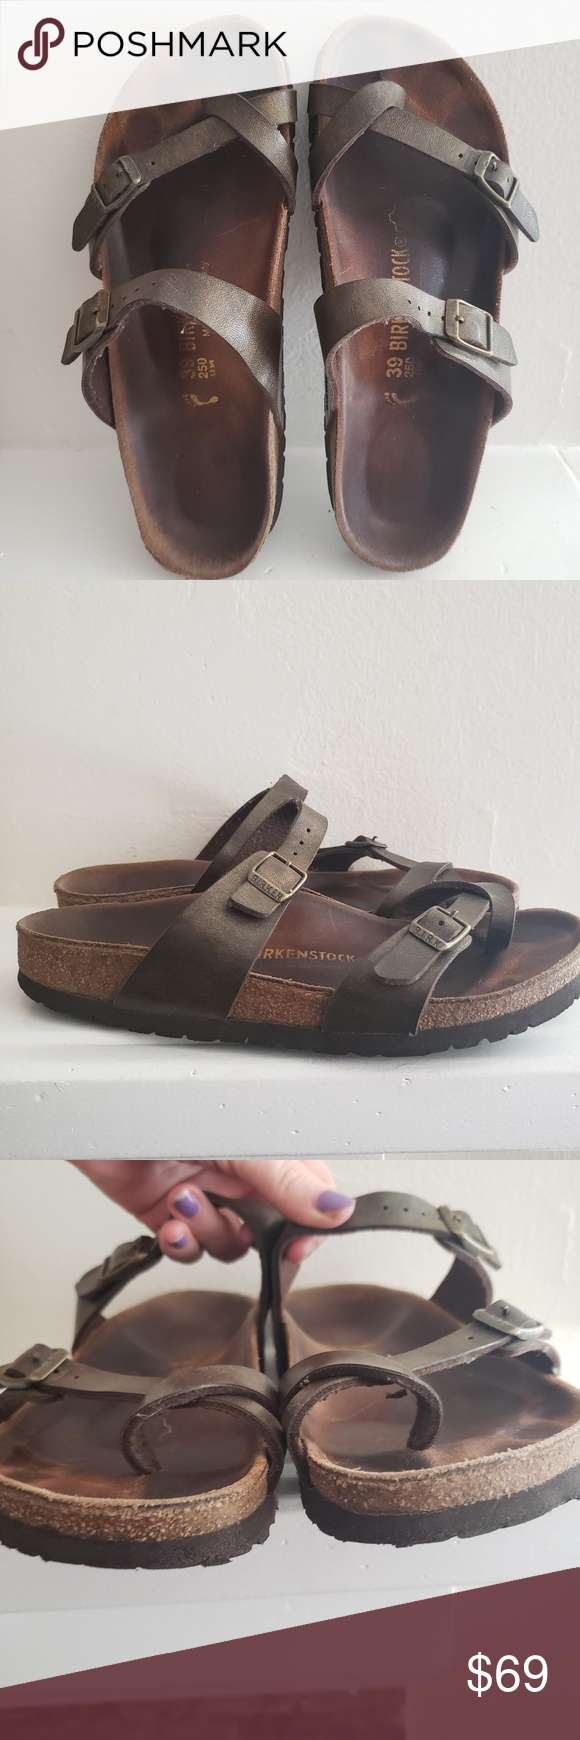 7fa282301d5cd95ef9fde547698d8def - How Do I Know What Size Birkenstocks To Get